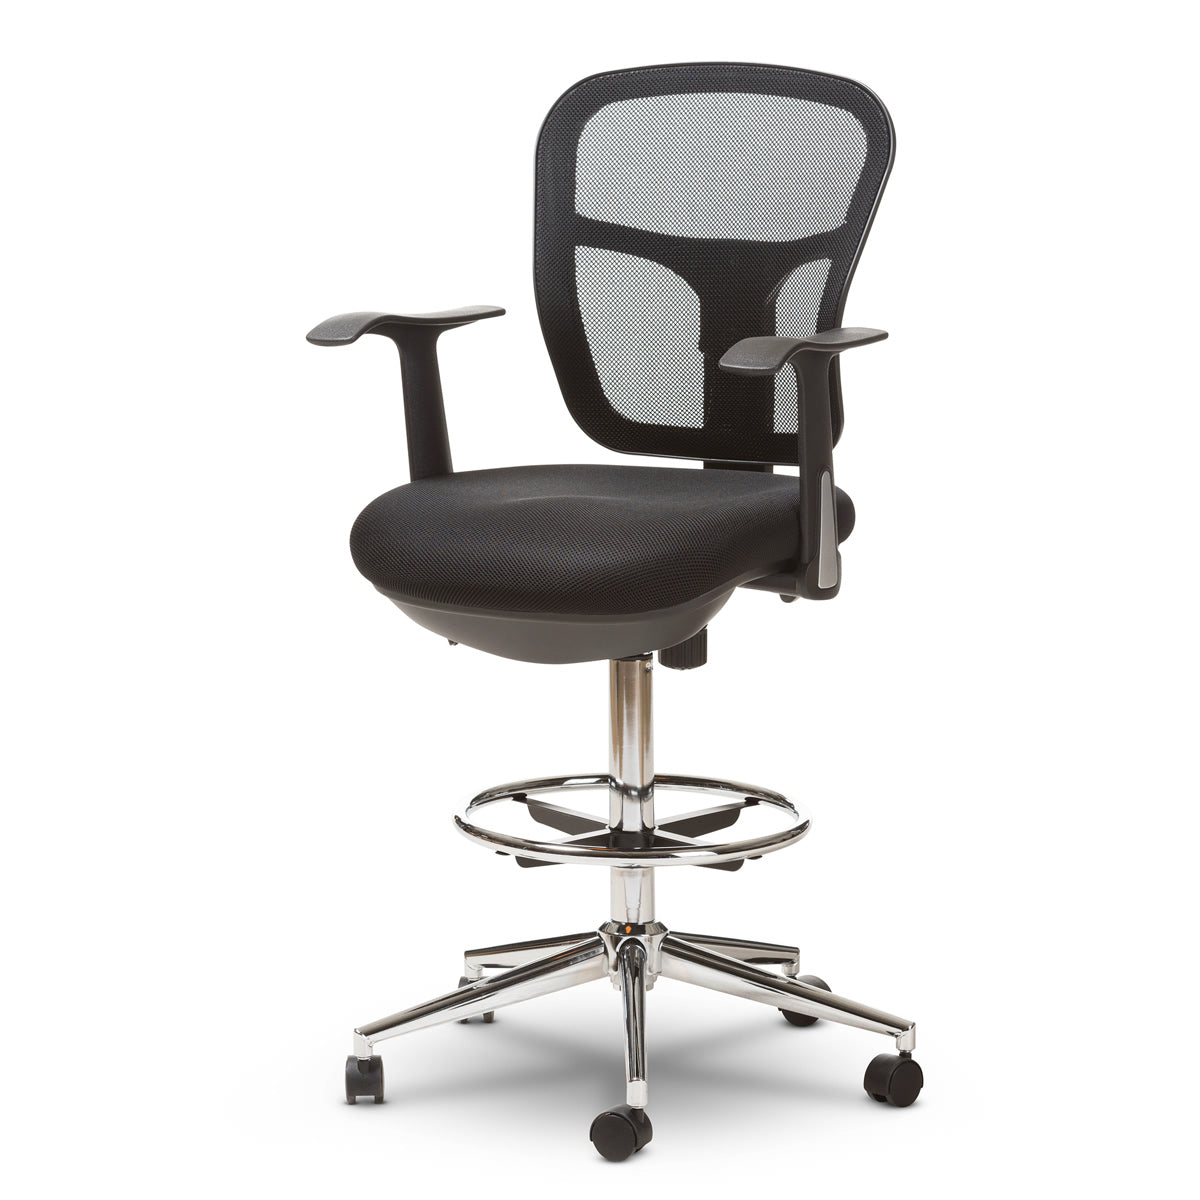 Baxton Studio Landon Modern and Contemporary and Contemporary Black Mesh Adjustable Height Drafting Stool Chair Baxton Studio-office chairs-Minimal And Modern - 1